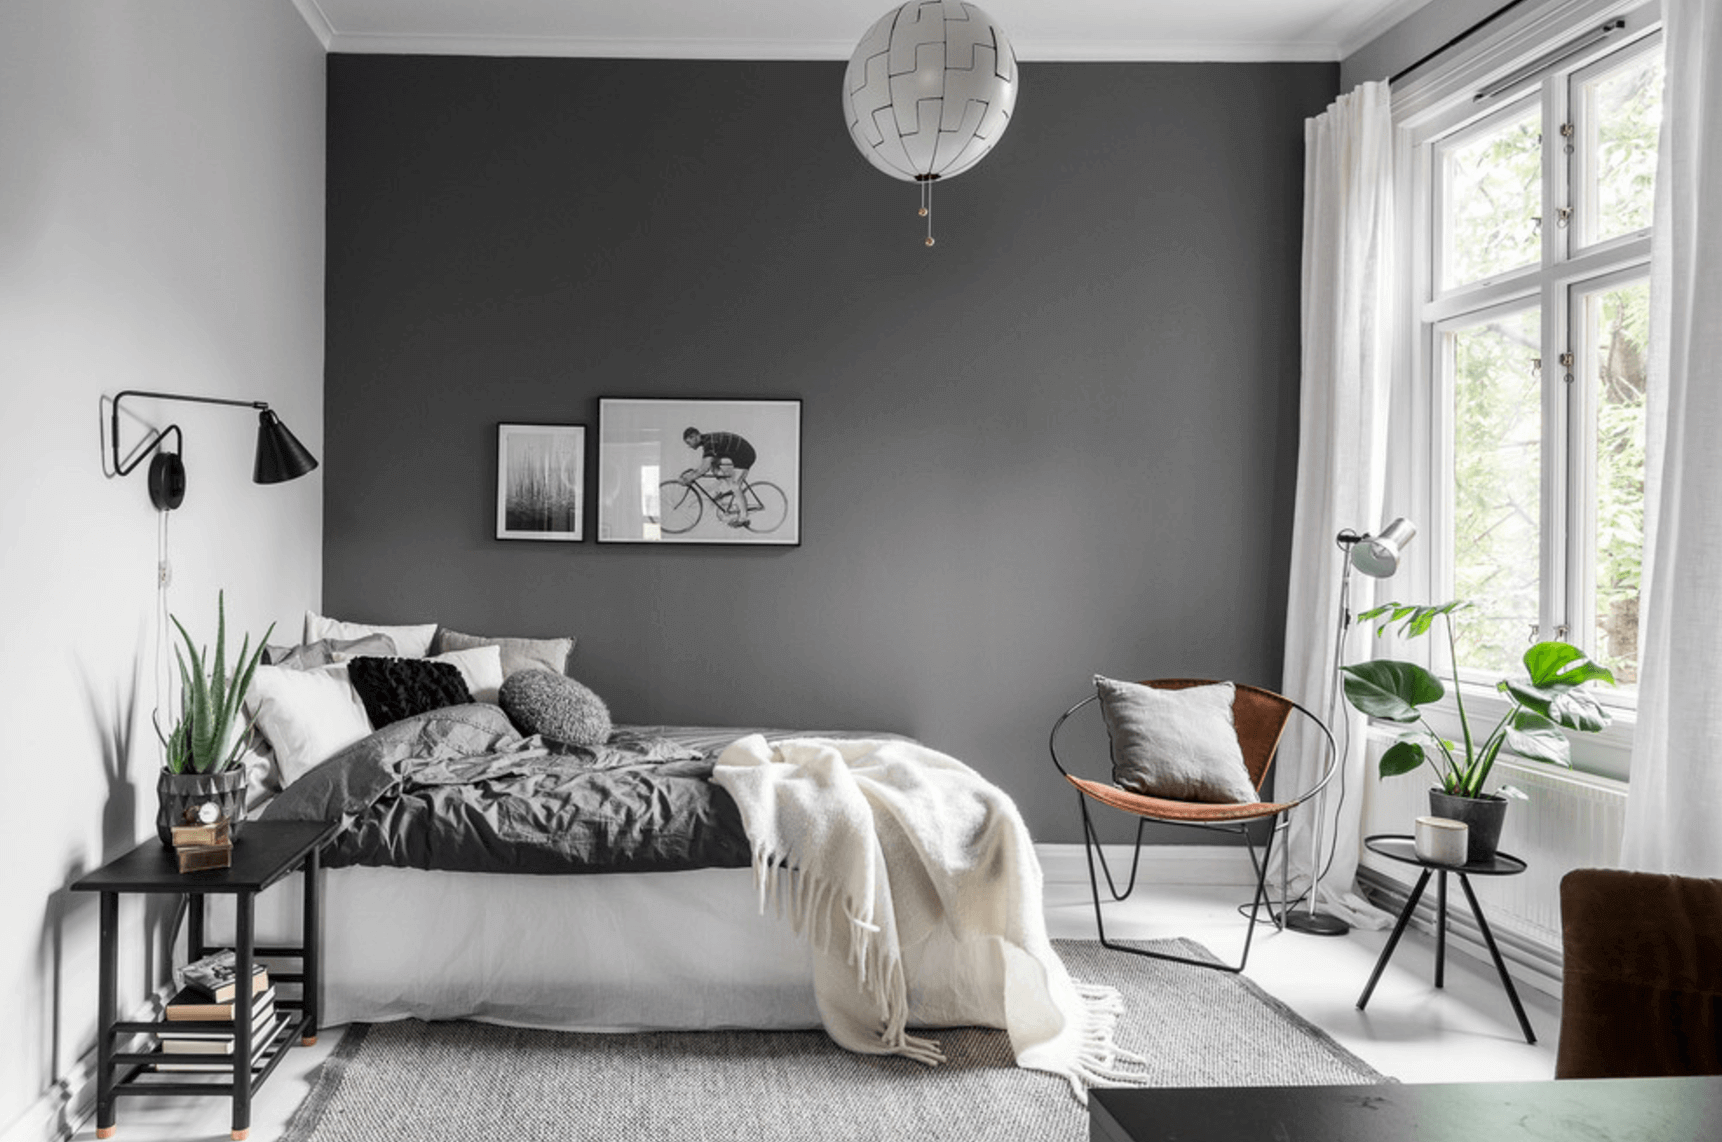 Grey Bedroom Decor Minimalist Décor is the Perfect Statement in this Grey Bedroom Ideas